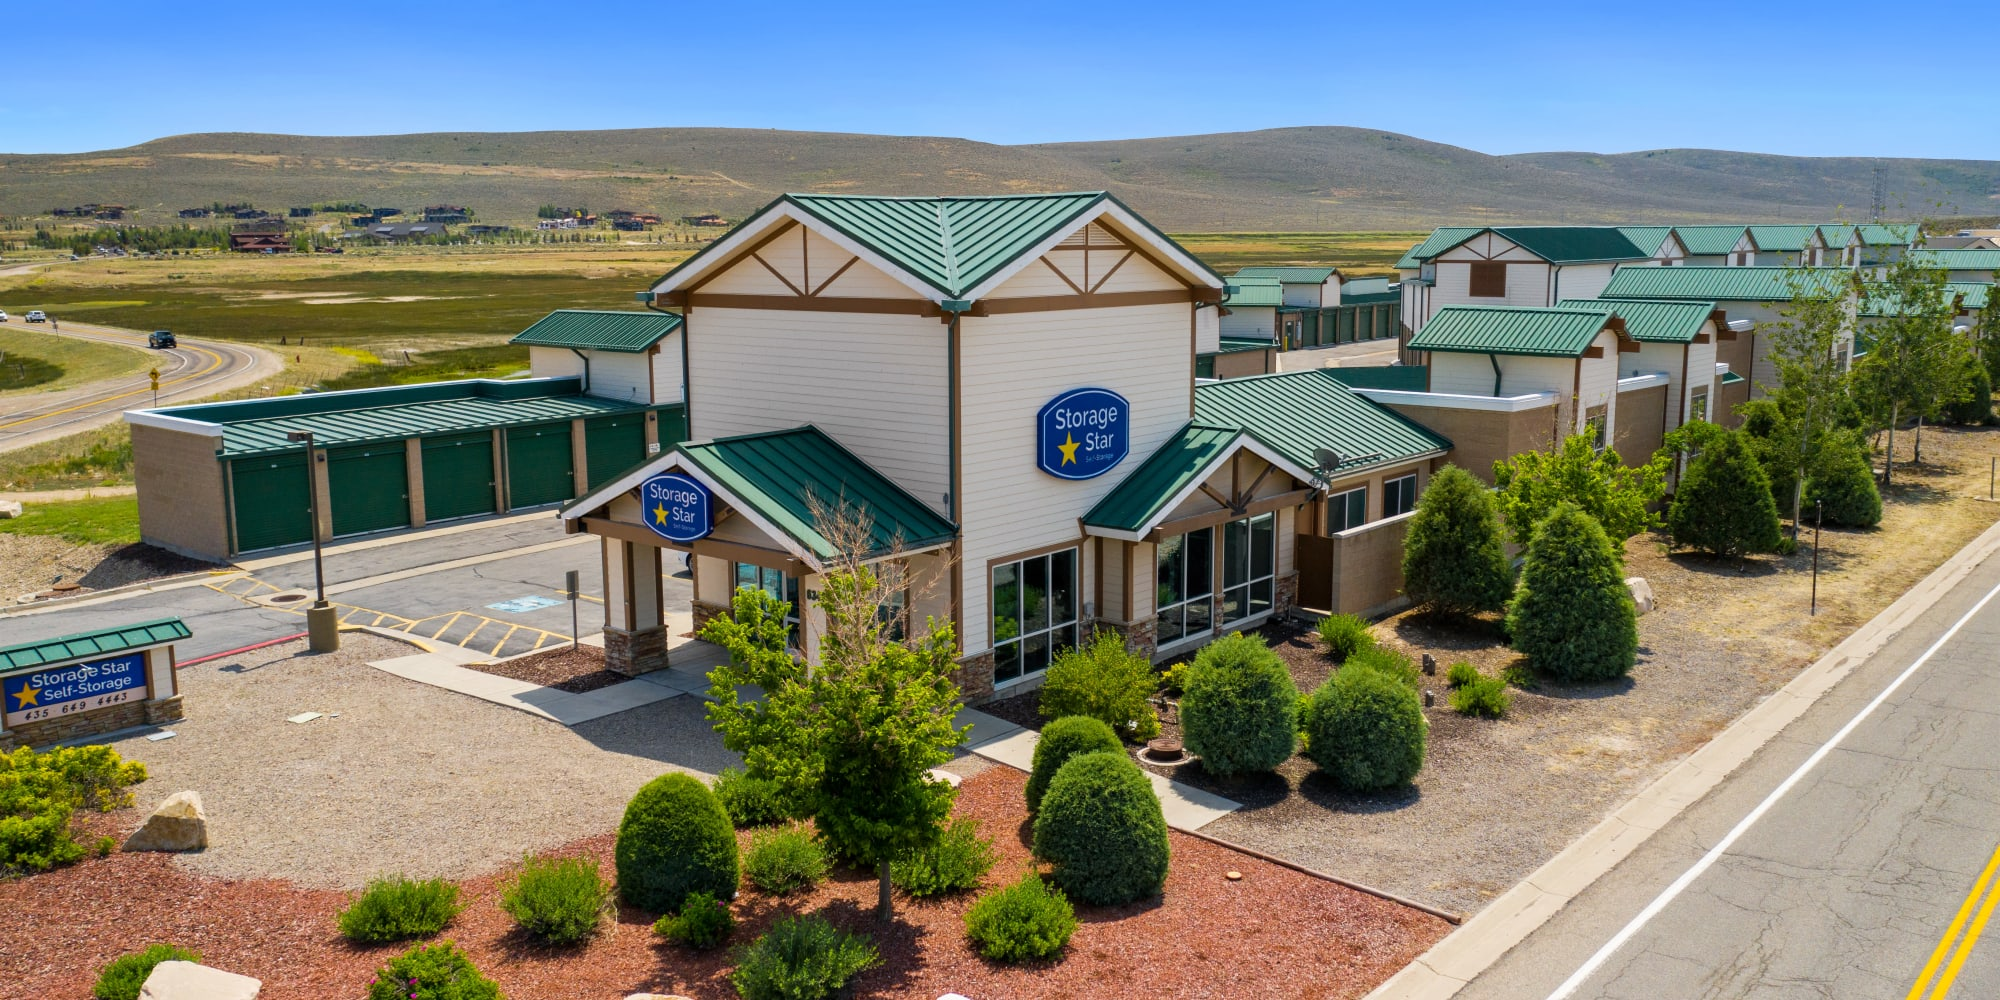 Self storage at Market Place Self Storage in Park City Utah